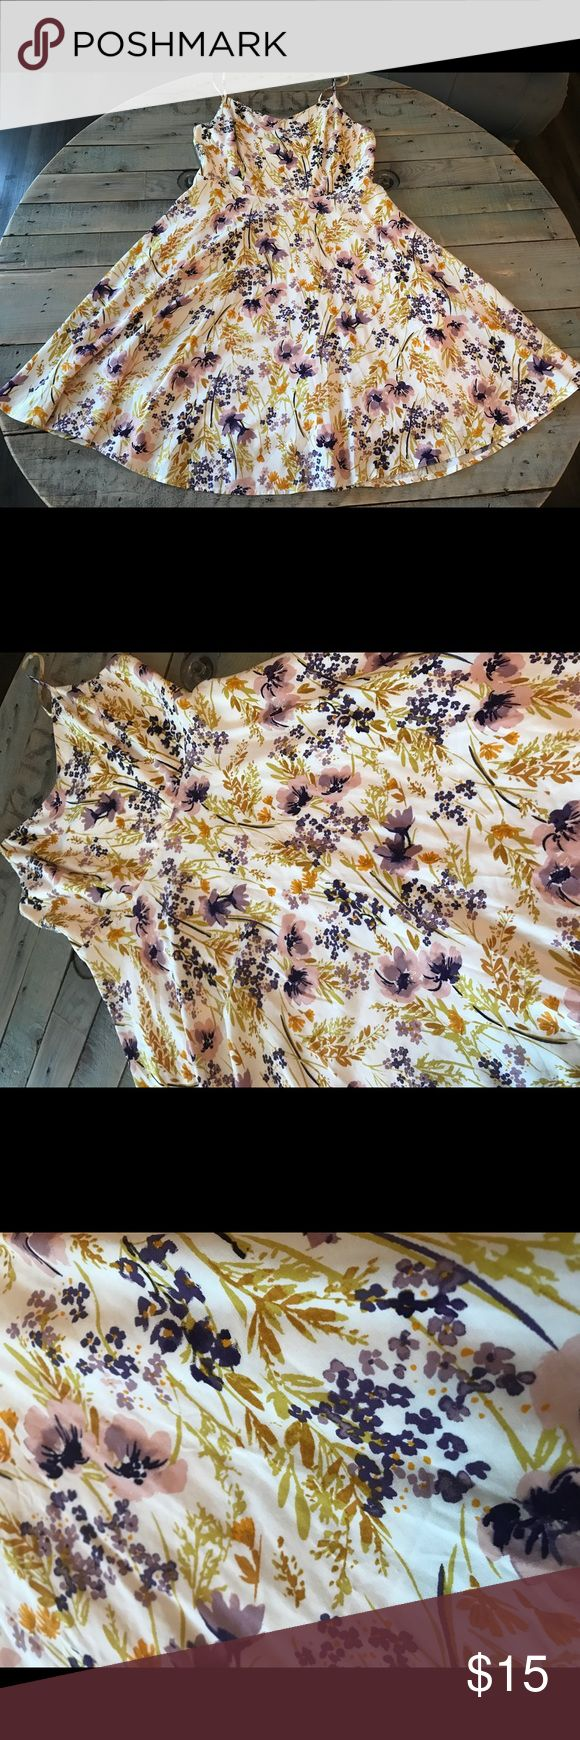 Women's Floral Old Navy dress empire waist size M Pre owned and gently used  Beautiful Floral print  Old Navy women's dress  Size Medium Empire waist  No rips or stains Arm pit to arm pit 16 inches, 31 inches long Old Navy Dresses